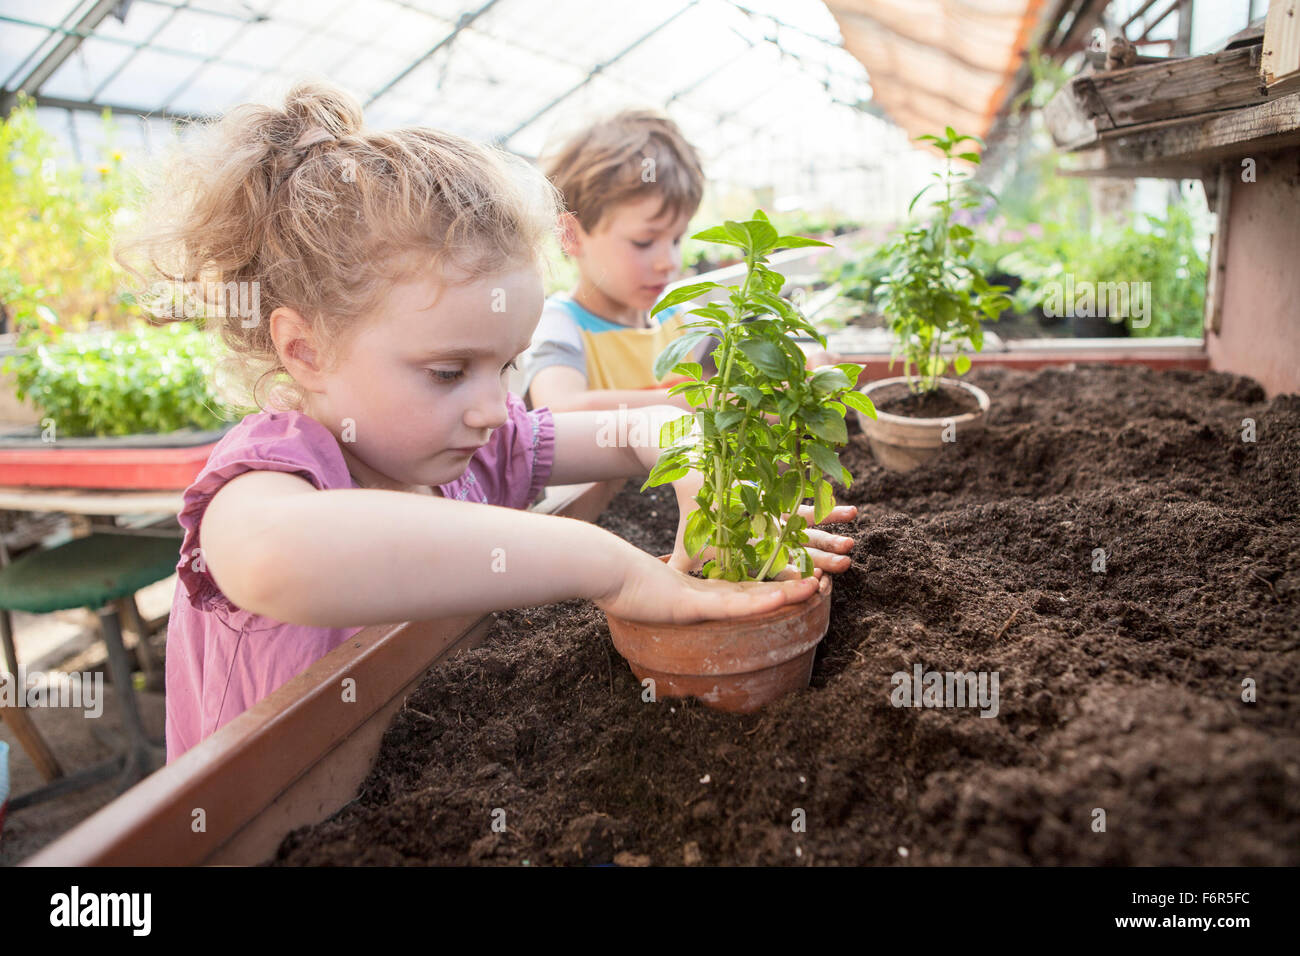 Two children in greenhouse planting plants - Stock Image